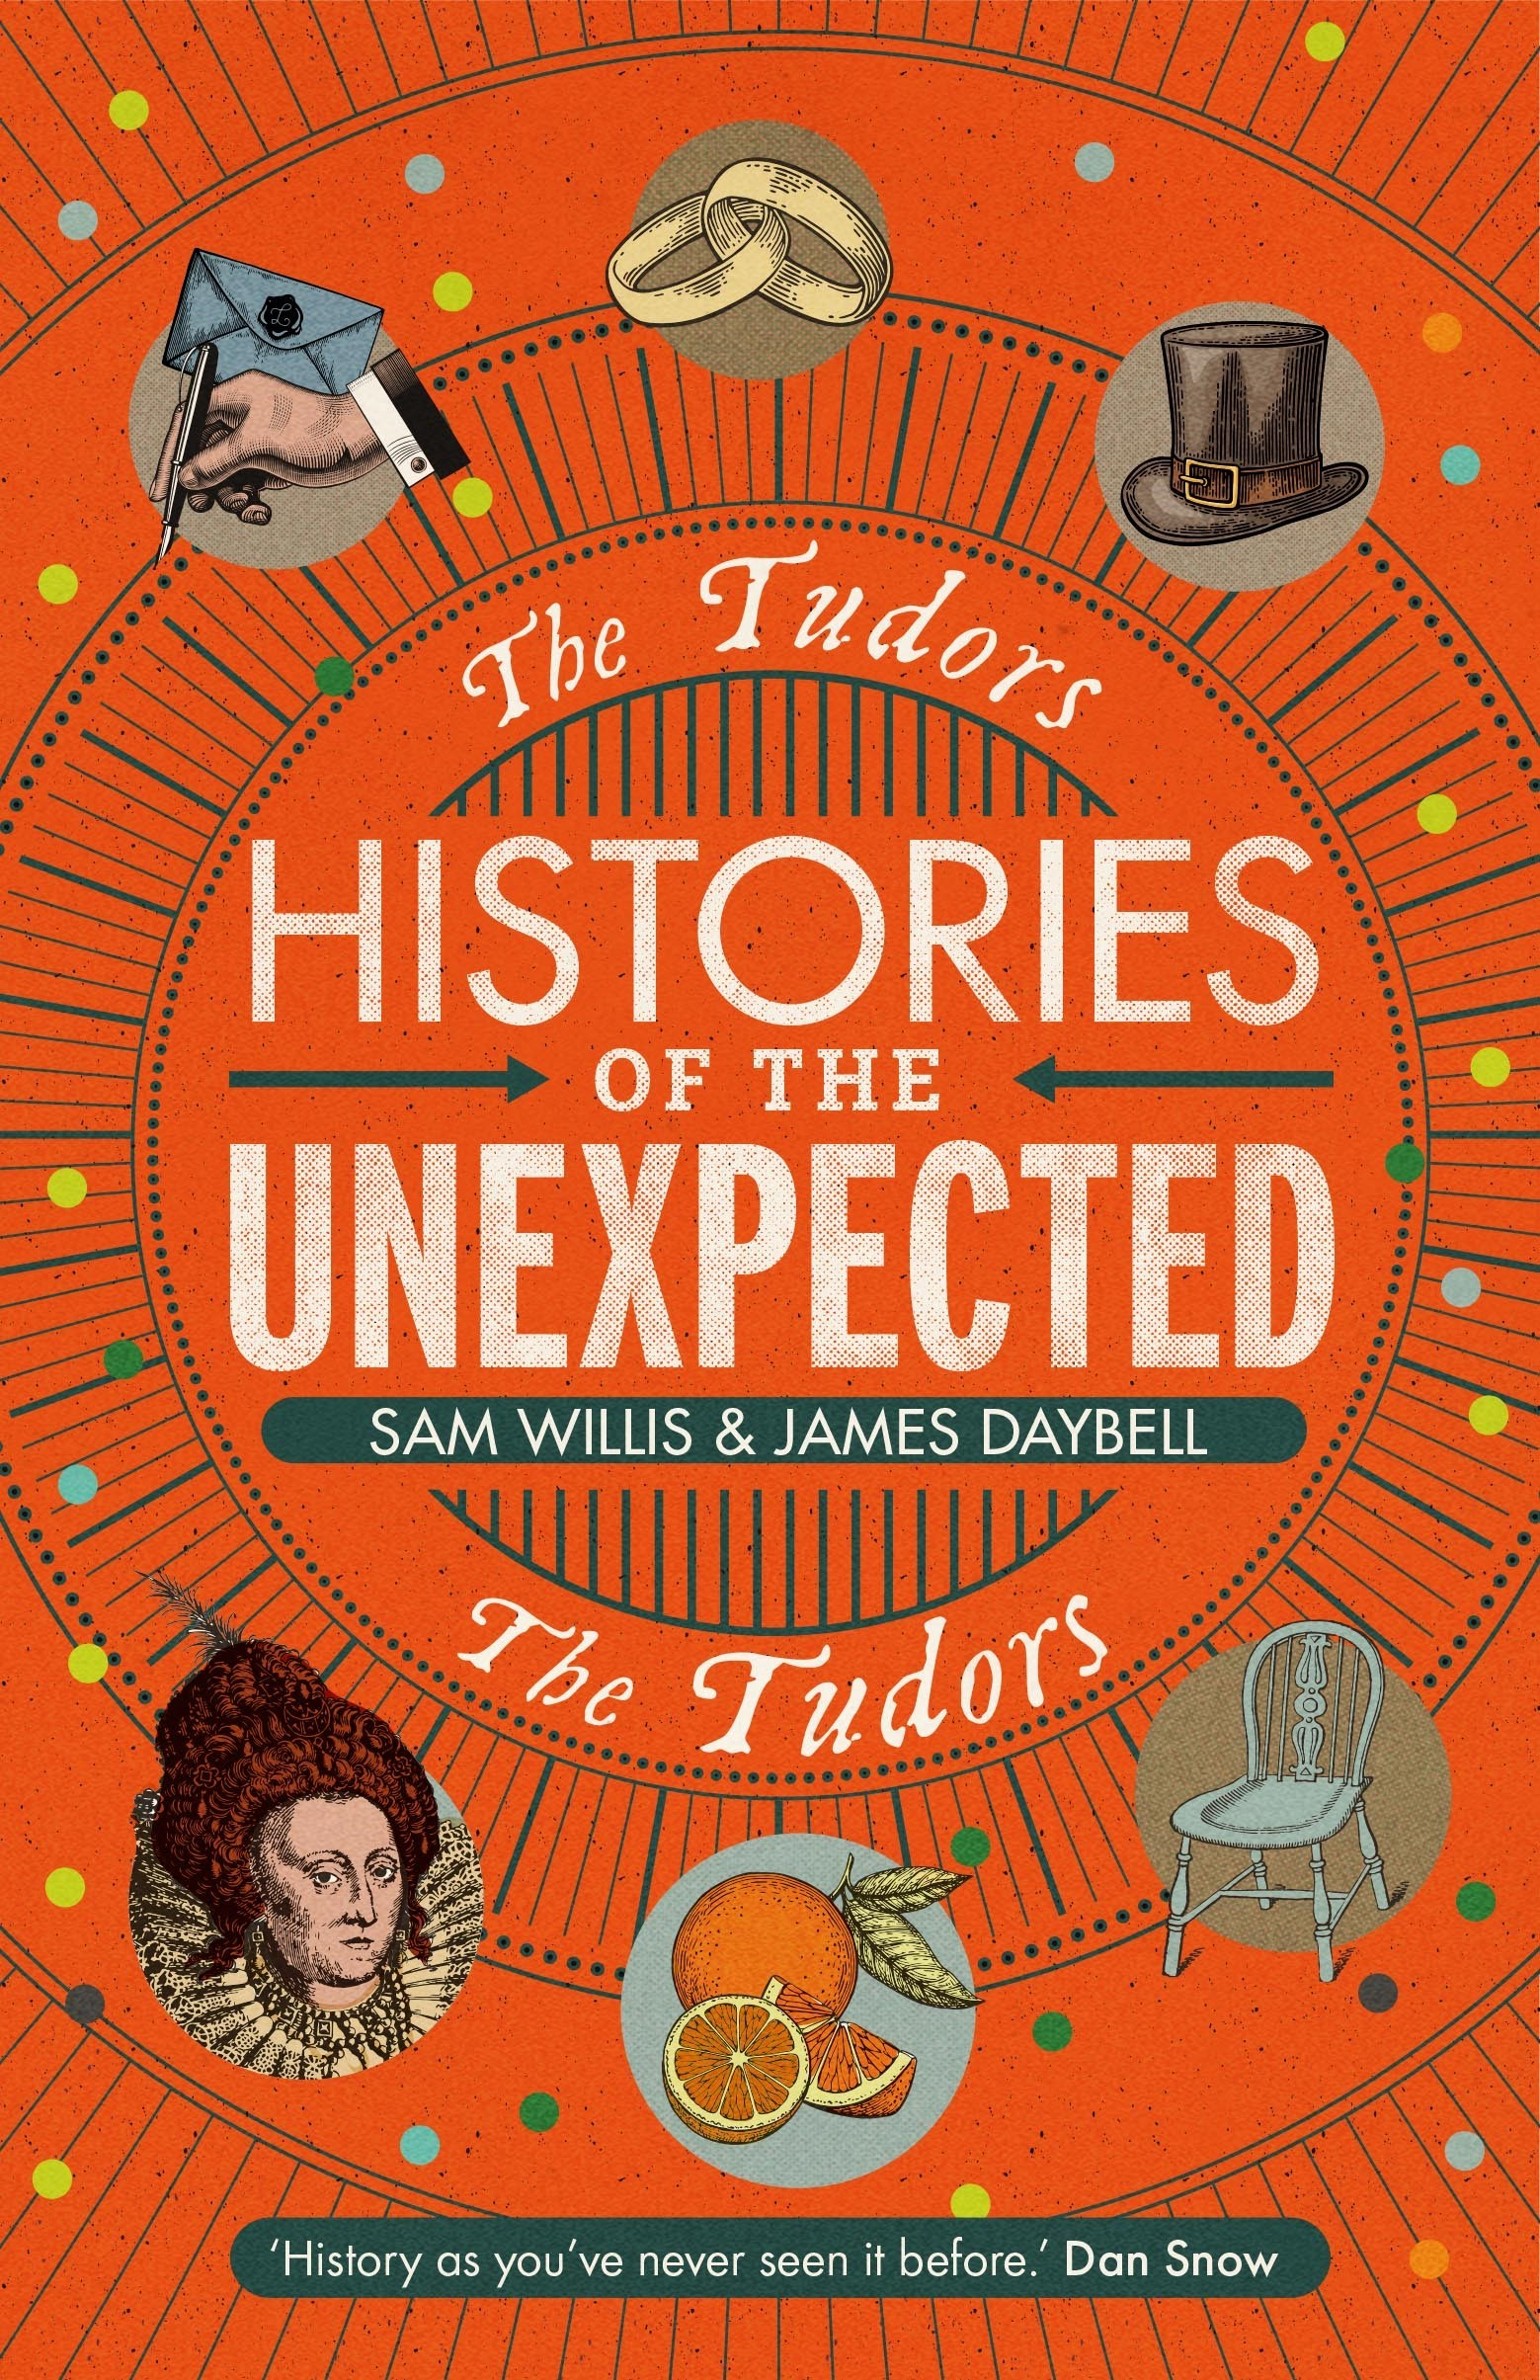 Histories of the Unexpected Live! The Tudors